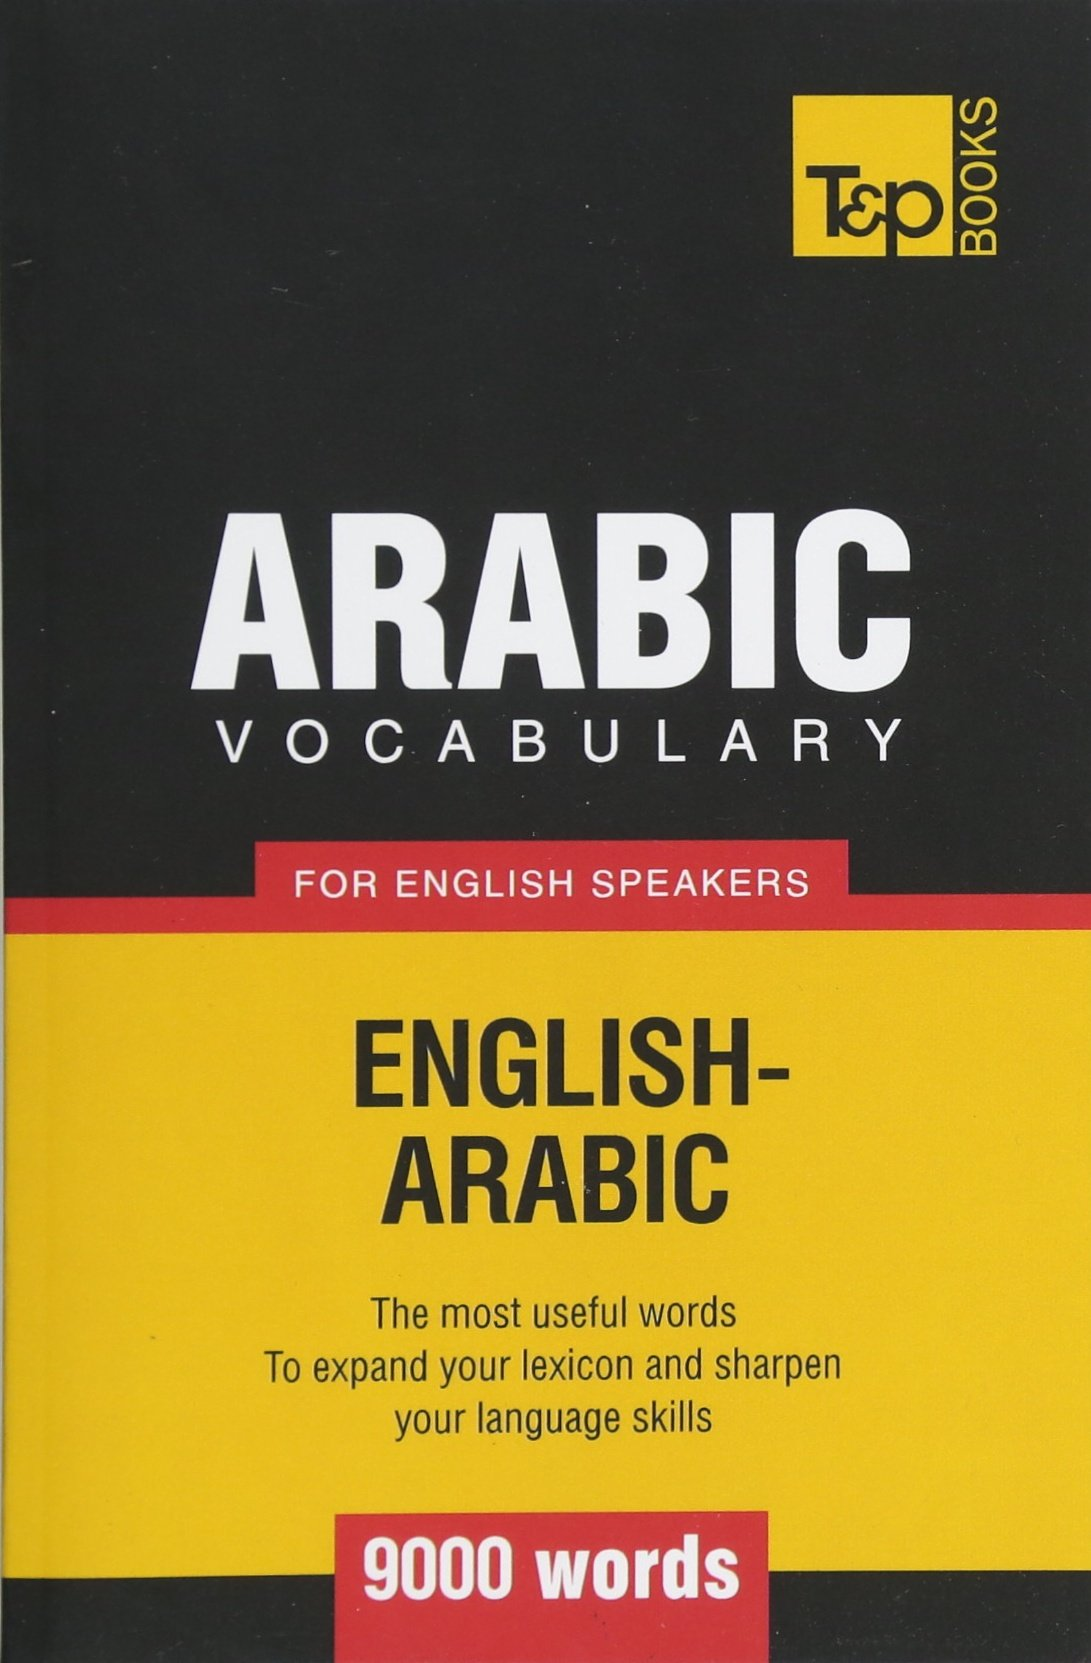 Arabic vocabulary for English speakers - 9000 words: Andrey